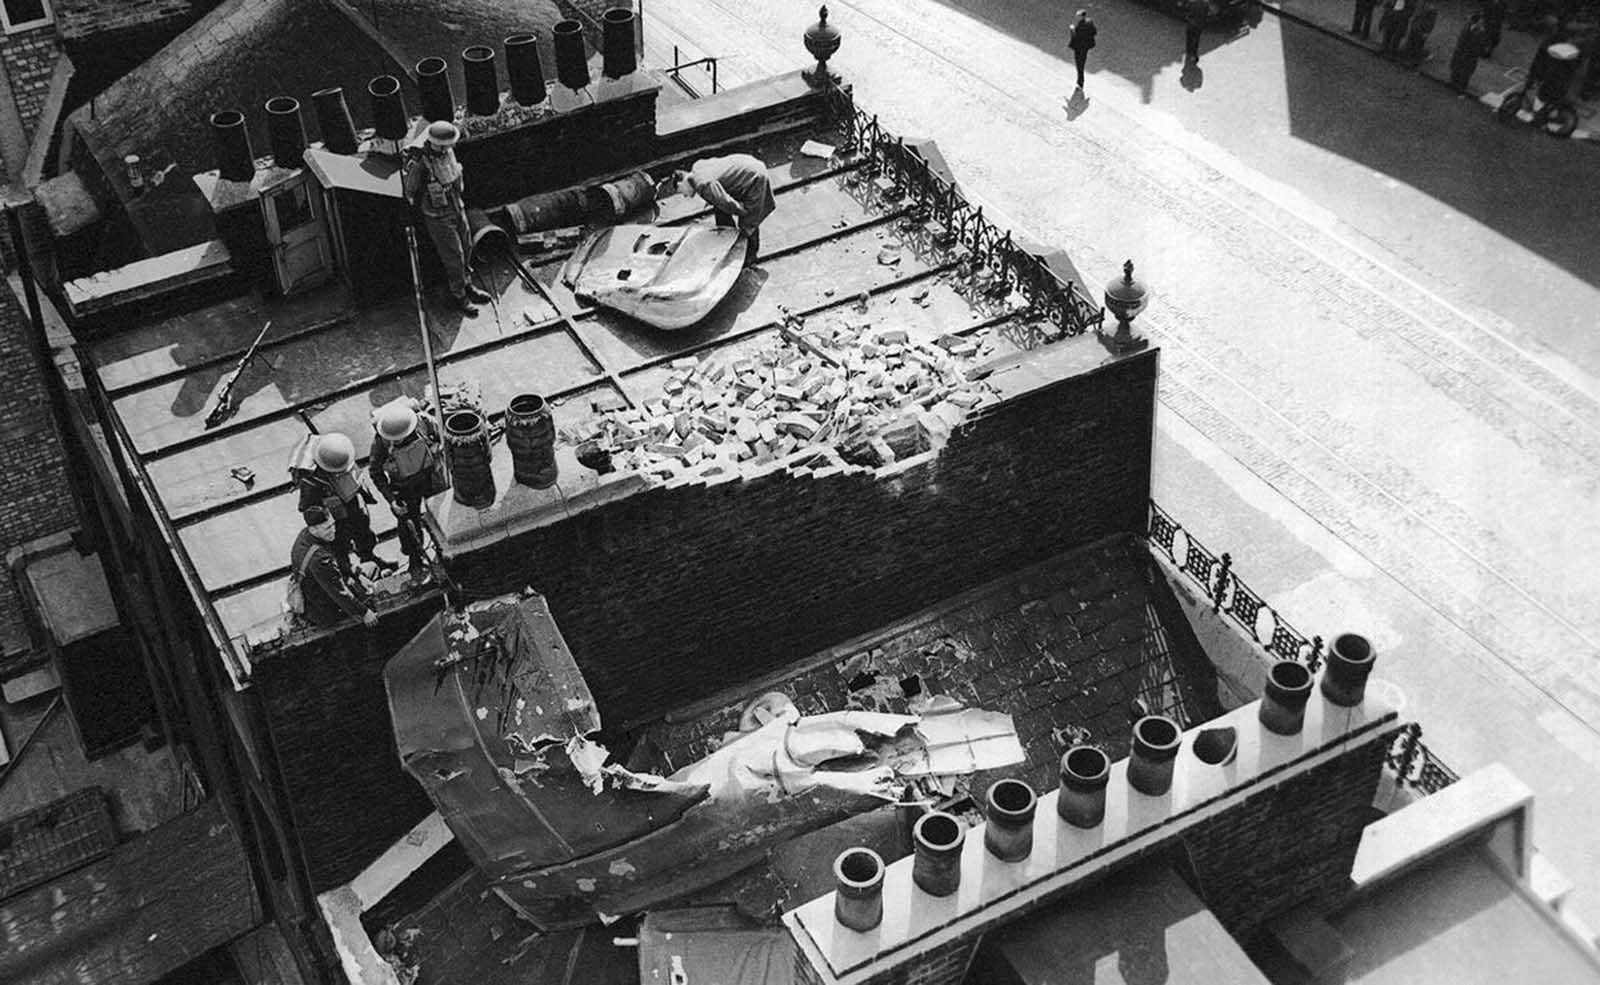 The tail and part of the fuselage of a German Dornier plane landed on a London rooftop shown Sept. 21, 1940, after British fighter planes shot it down on September 15. The rest of the raiding plane crashed near Victoria Station.